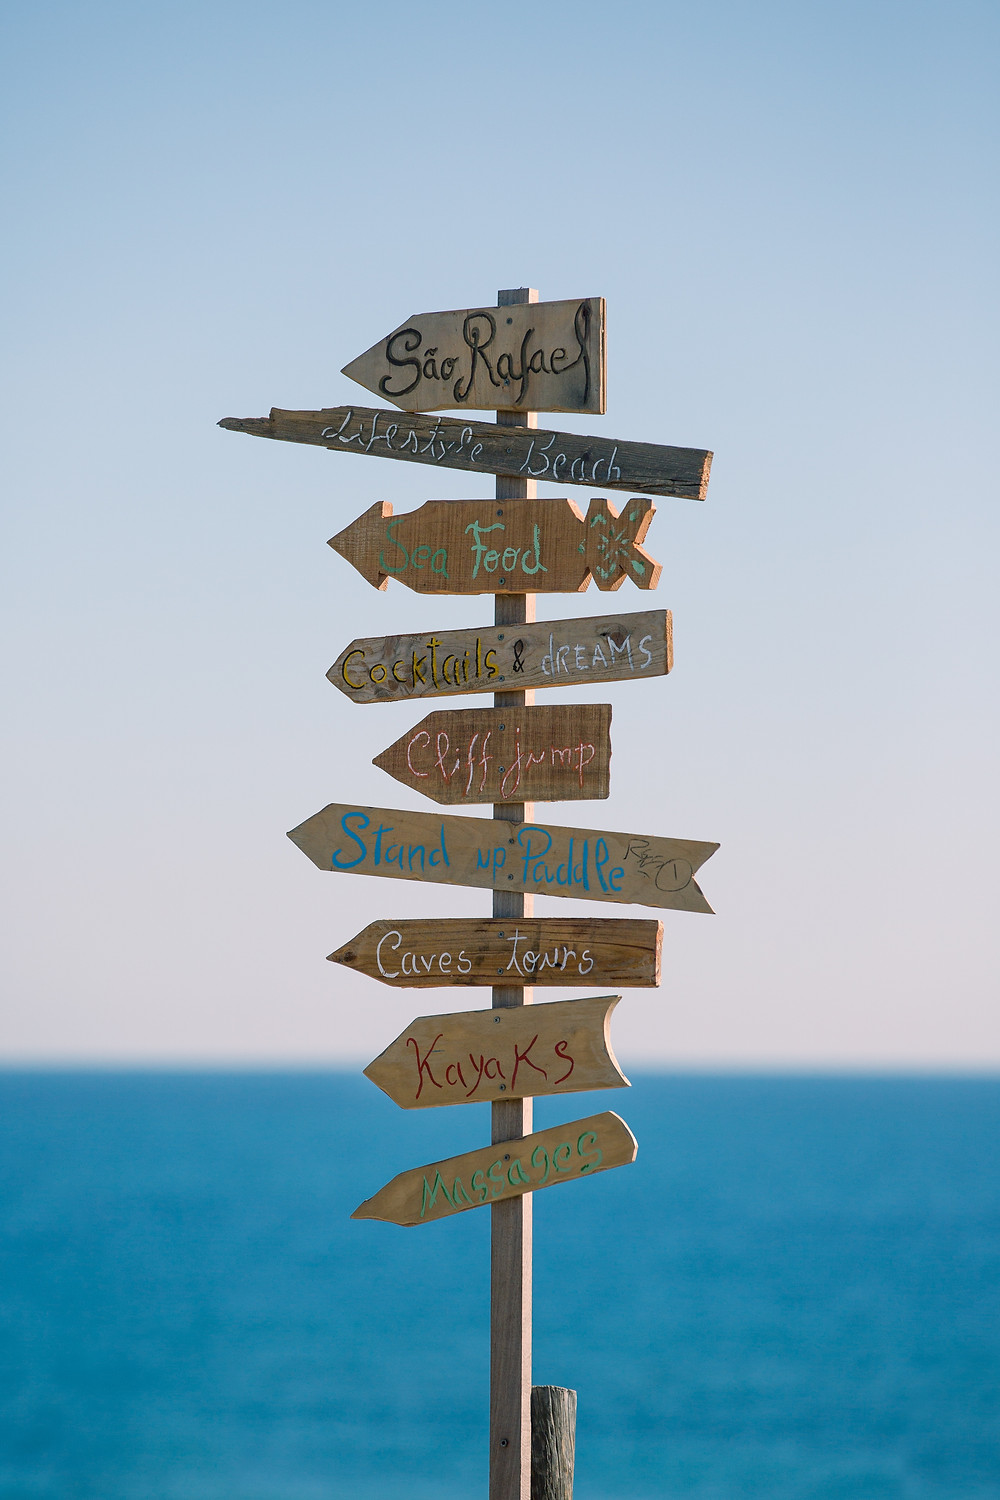 Post on beach with different travel signs, representing activities for a trip